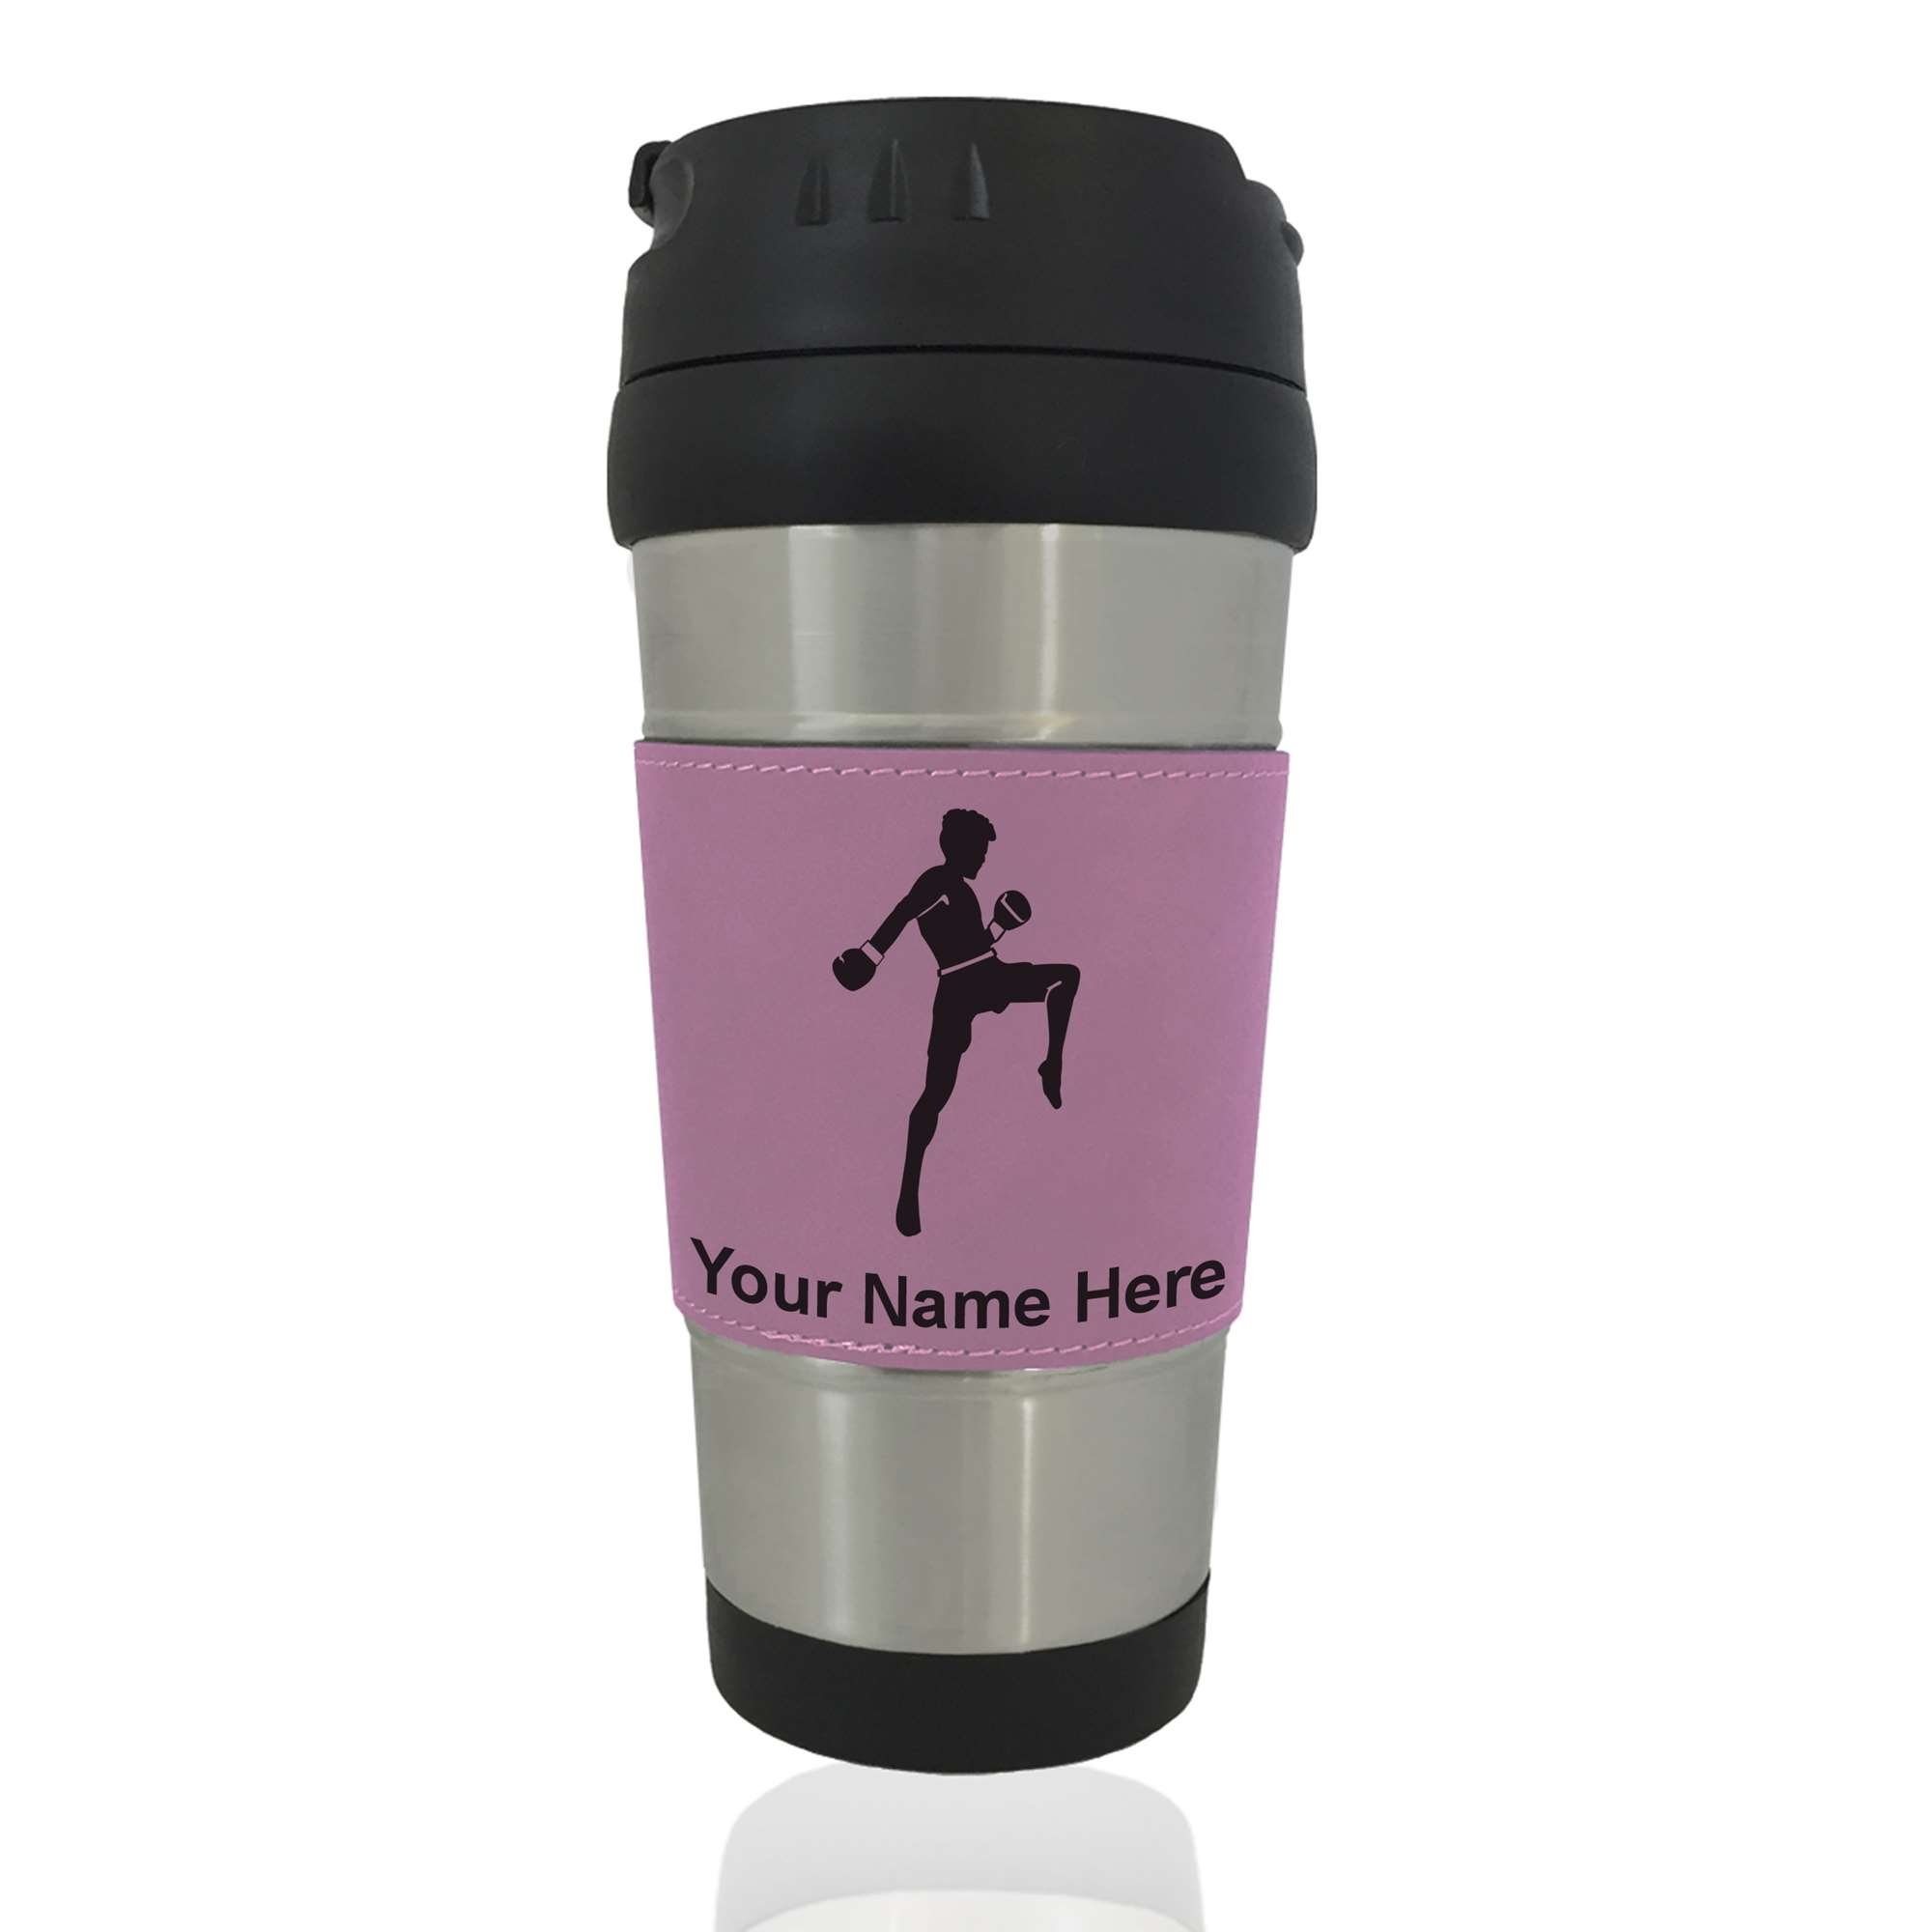 Travel Mug - Muay Thai Fighter - Personalized Engraving Included (Pink)